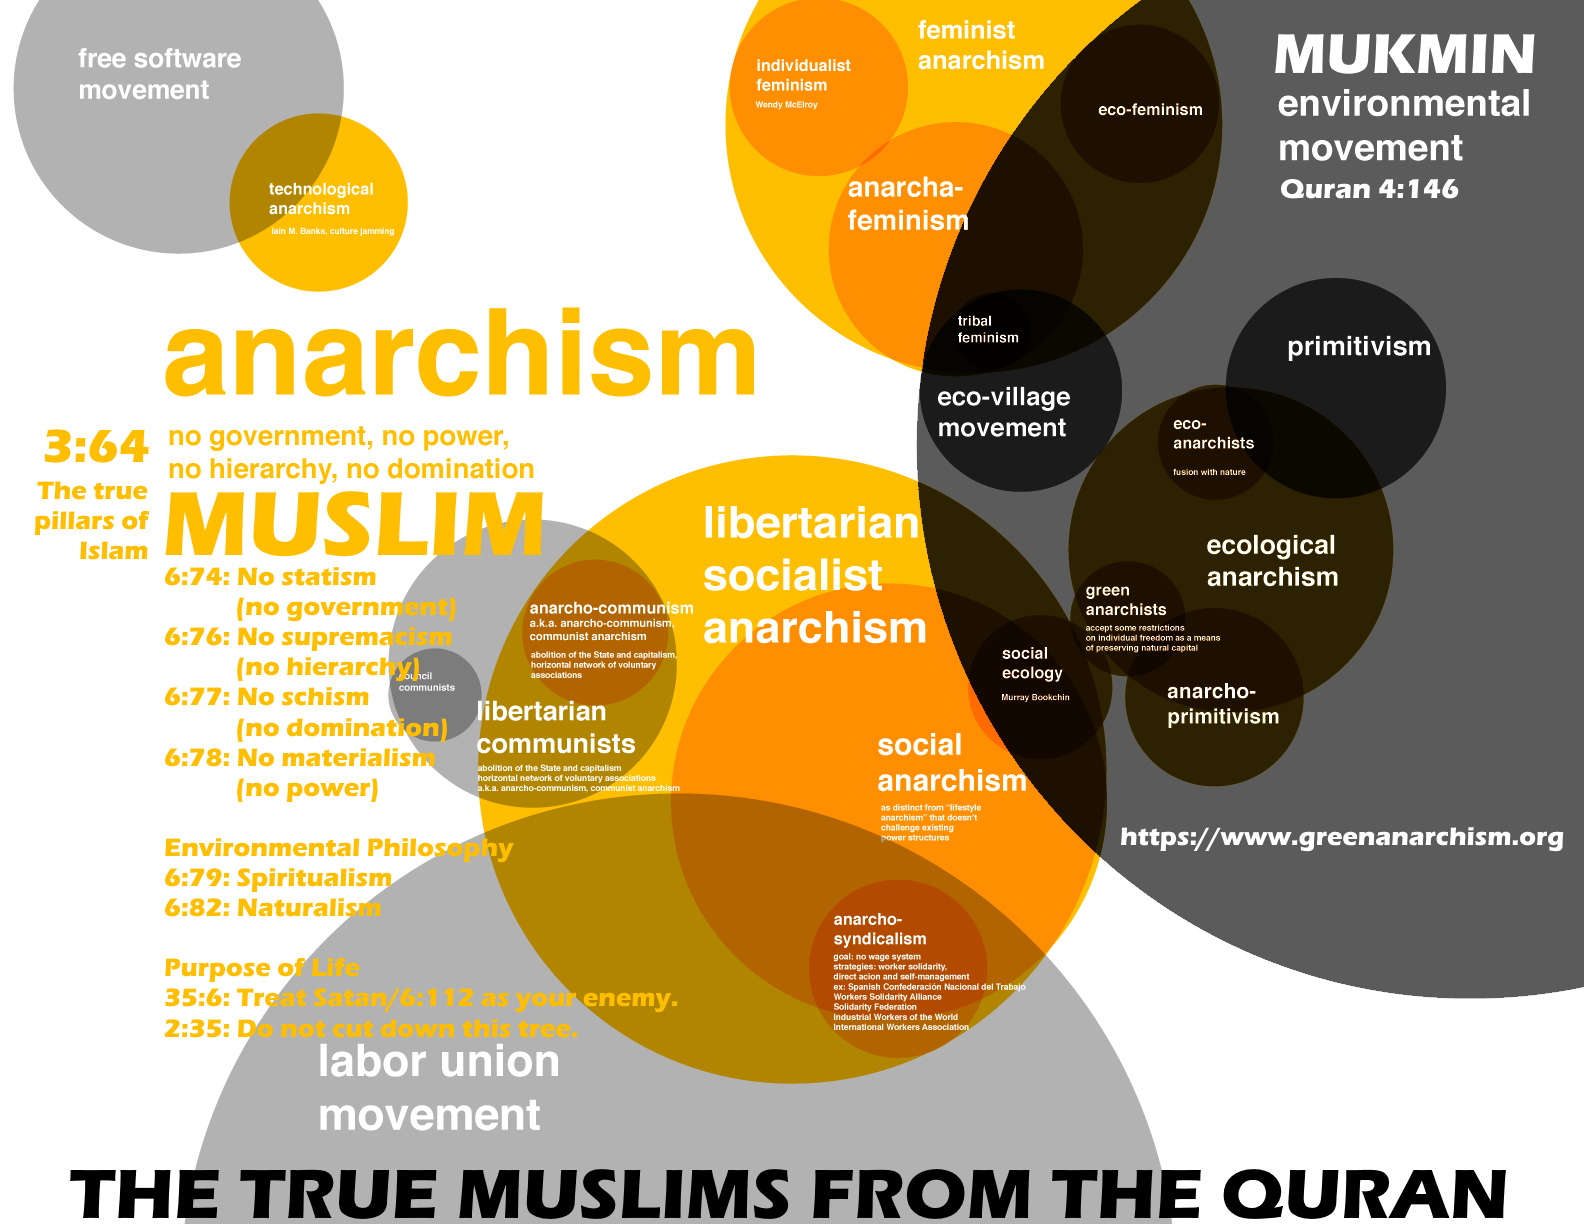 The definition of Muslims